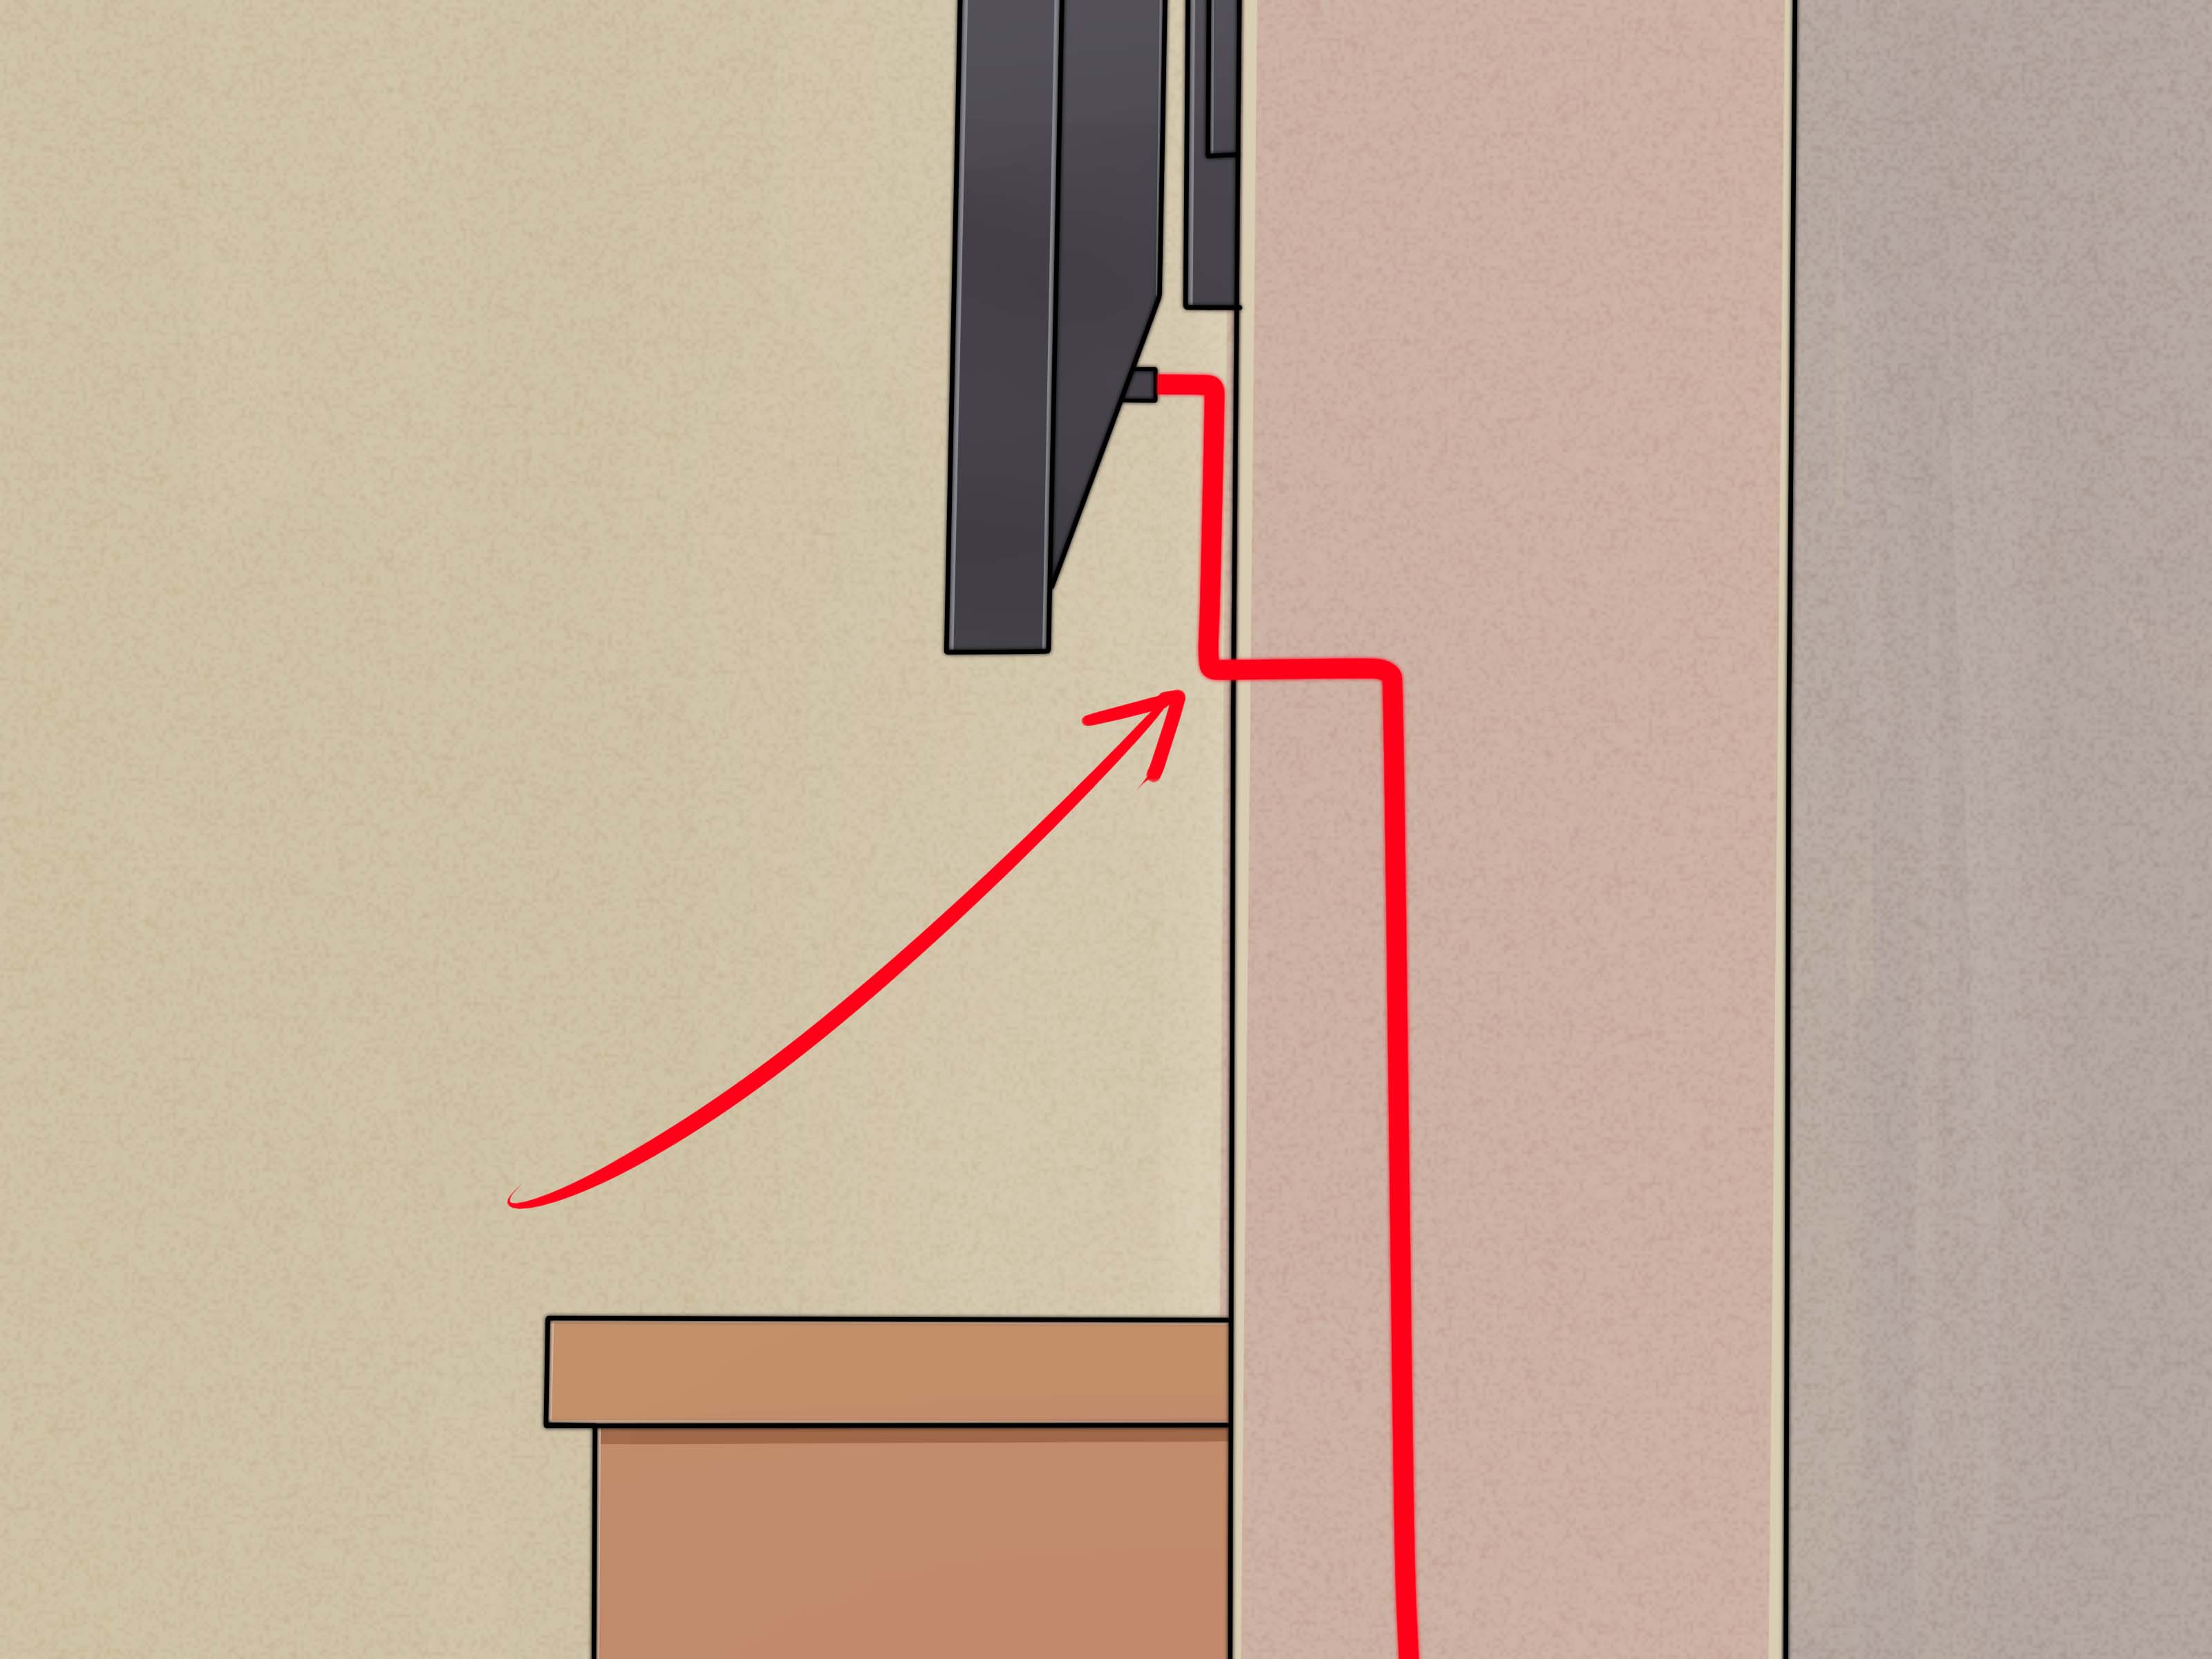 How To Install A Flat Panel Tv On A Wall With No Wires Showing